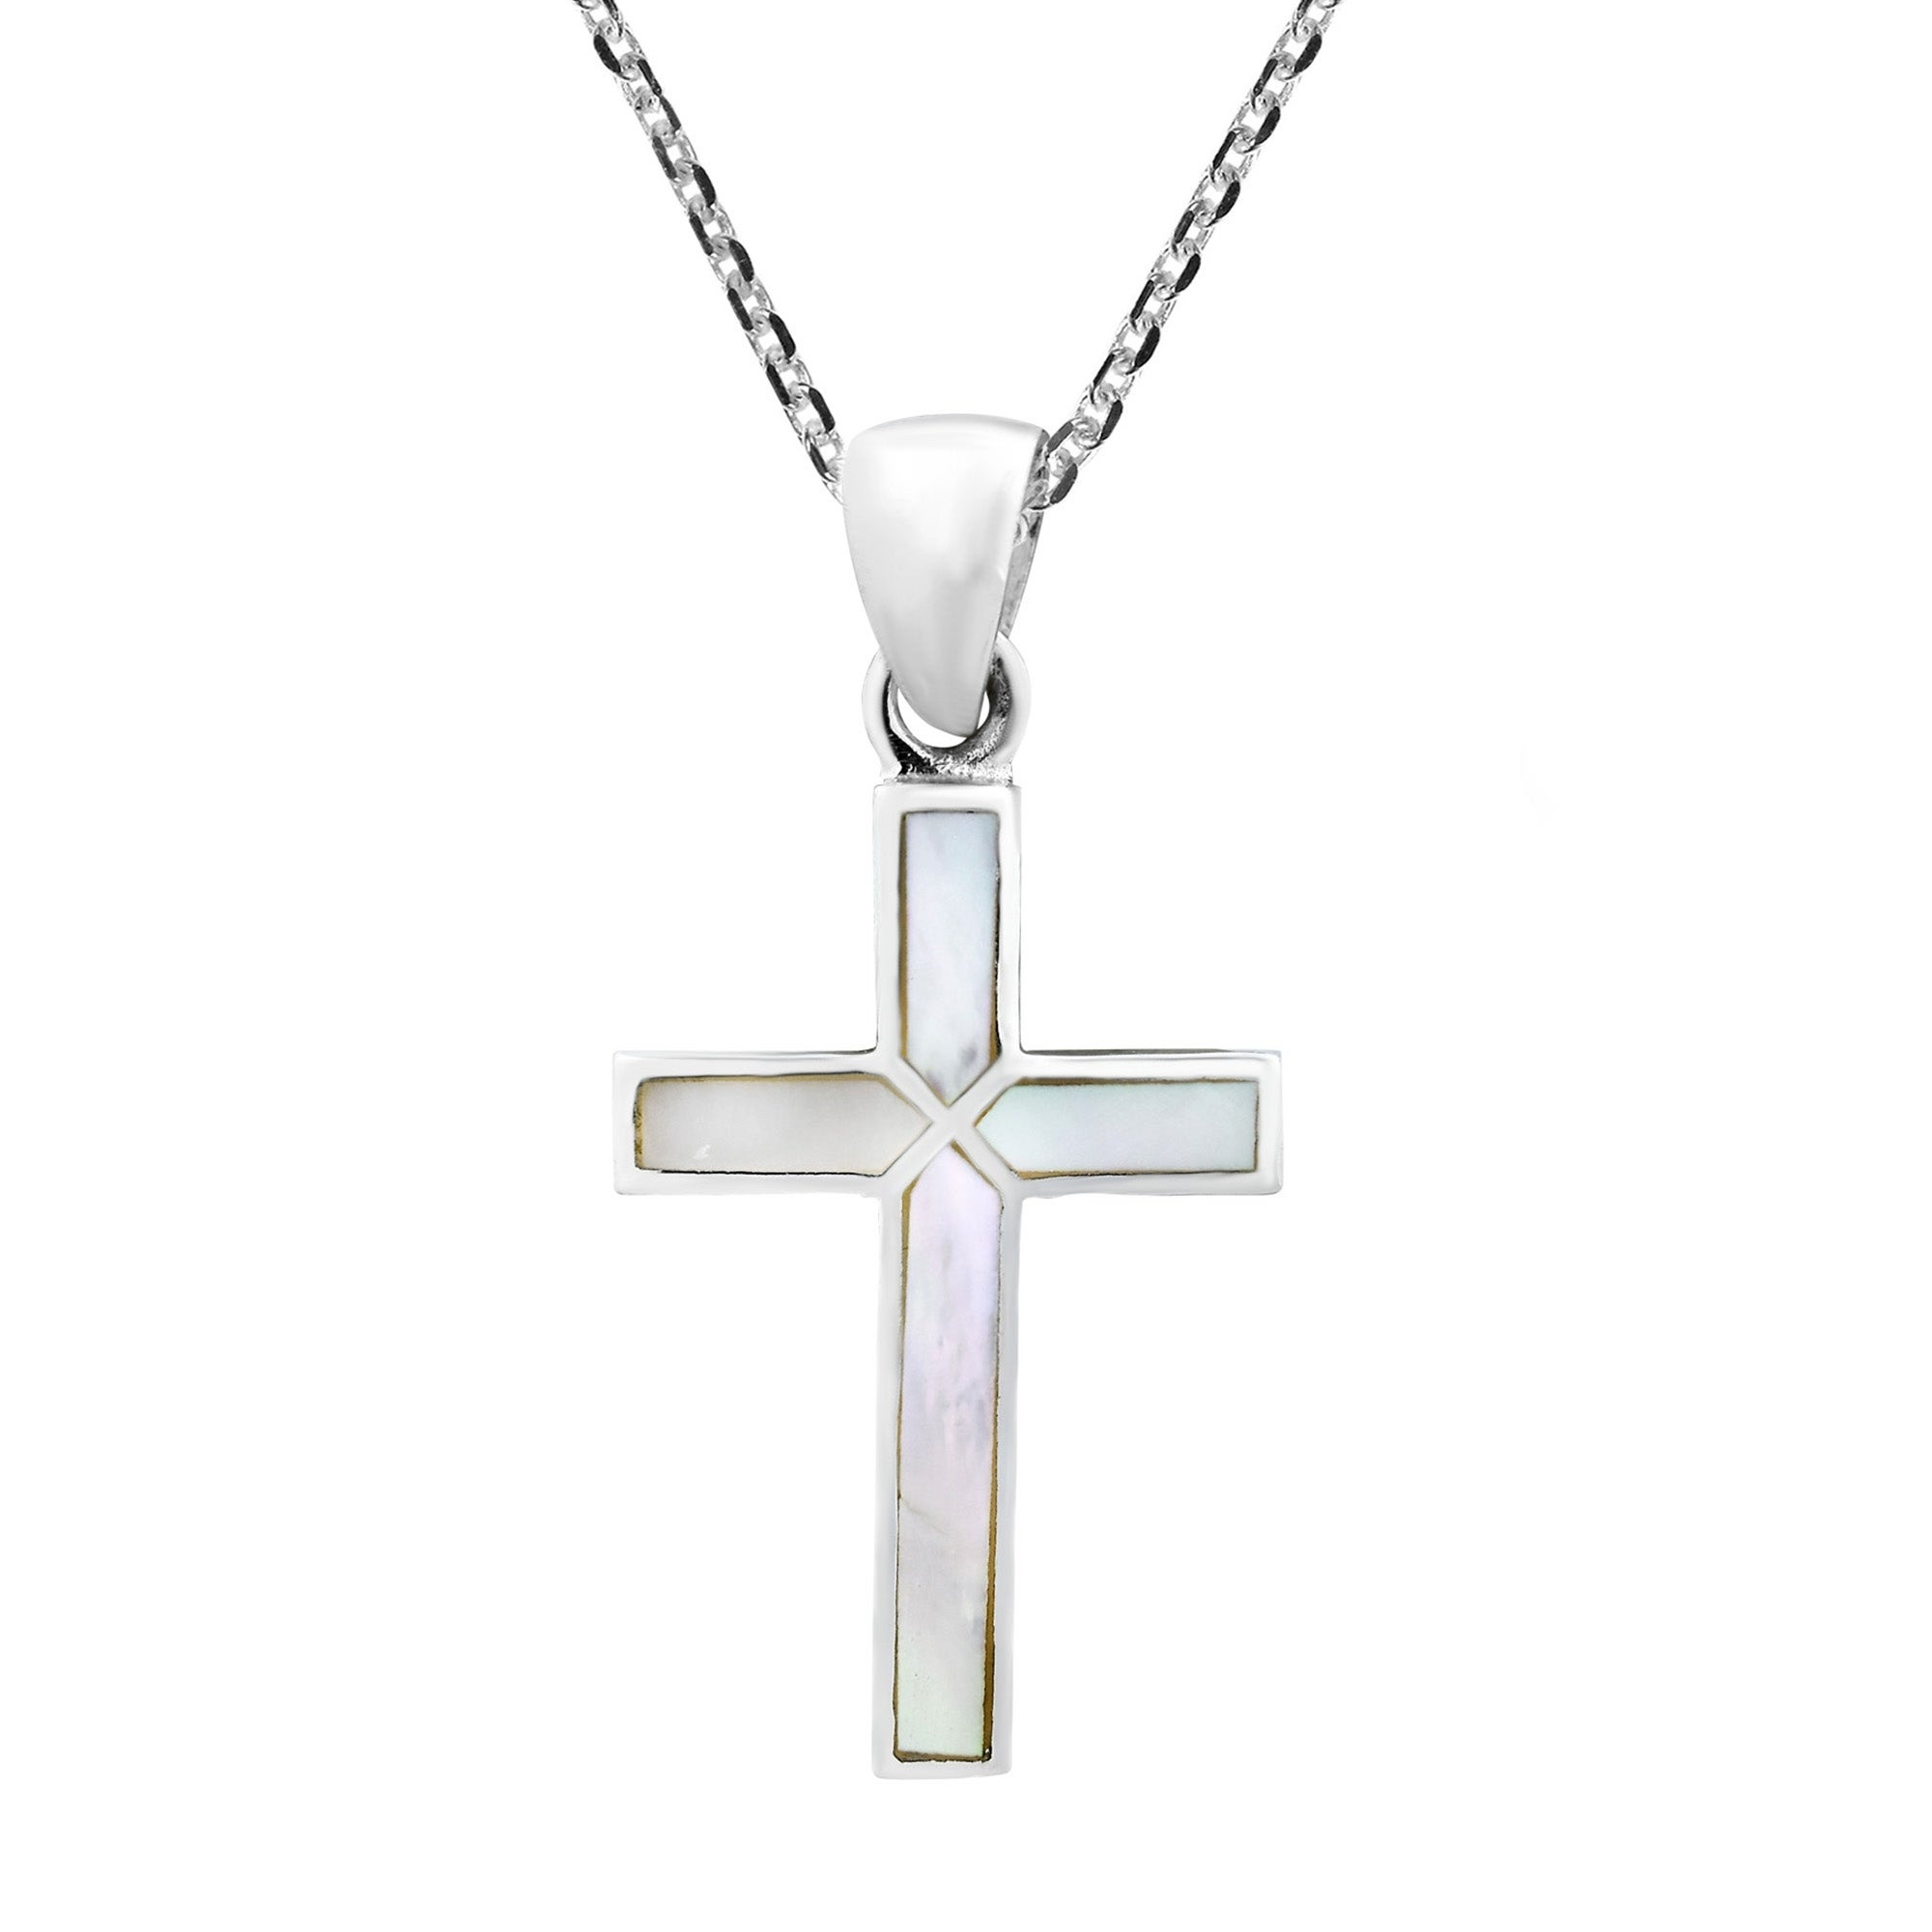 Cross of faith inlaid mother of pearl 925 sterling silver cross of faith inlaid mother of pearl 925 sterling silver necklace white free shipping on orders over 45 overstock 24229690 biocorpaavc Images